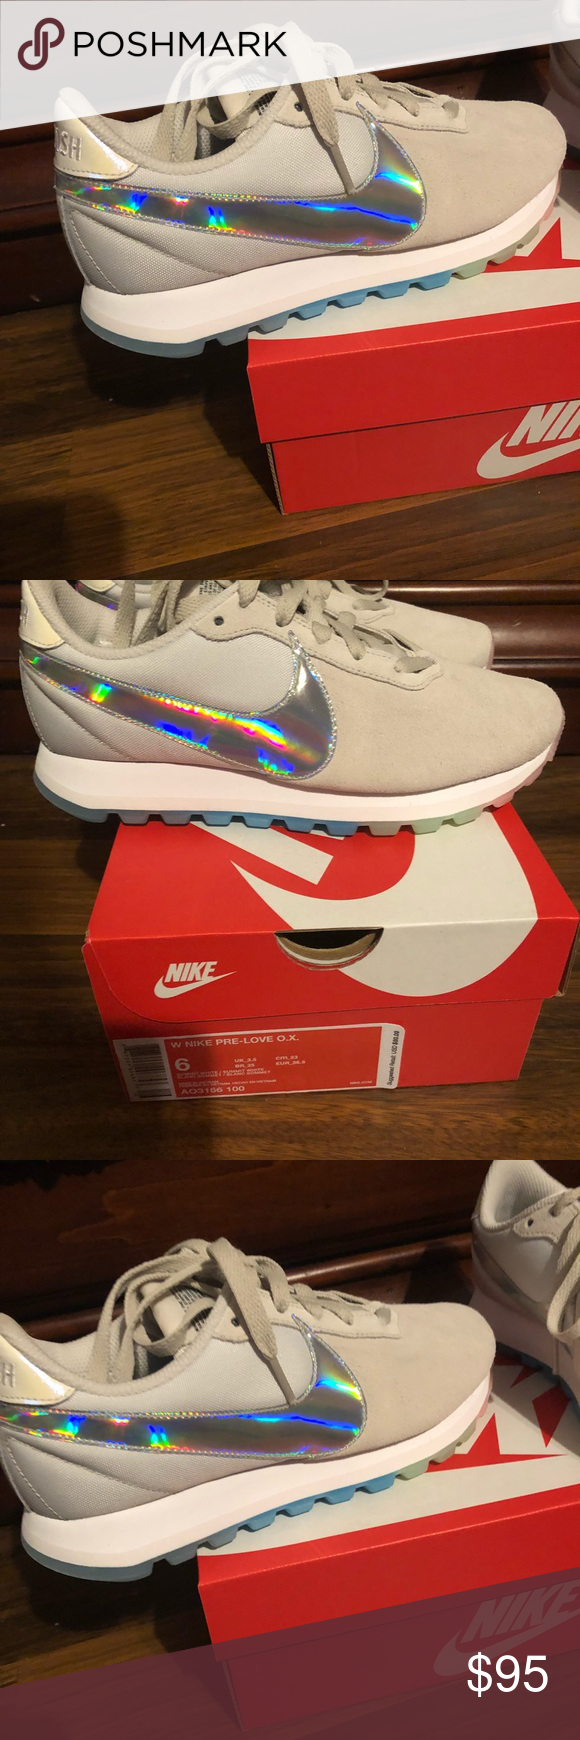 c44381d0675cd5 Nike women s Pre love O.X. Rainbow 🌈 shoes 6.5 Nike women s size 6.5  Rainbow 🌈 O.X tennis shoes only tried on purchased last month